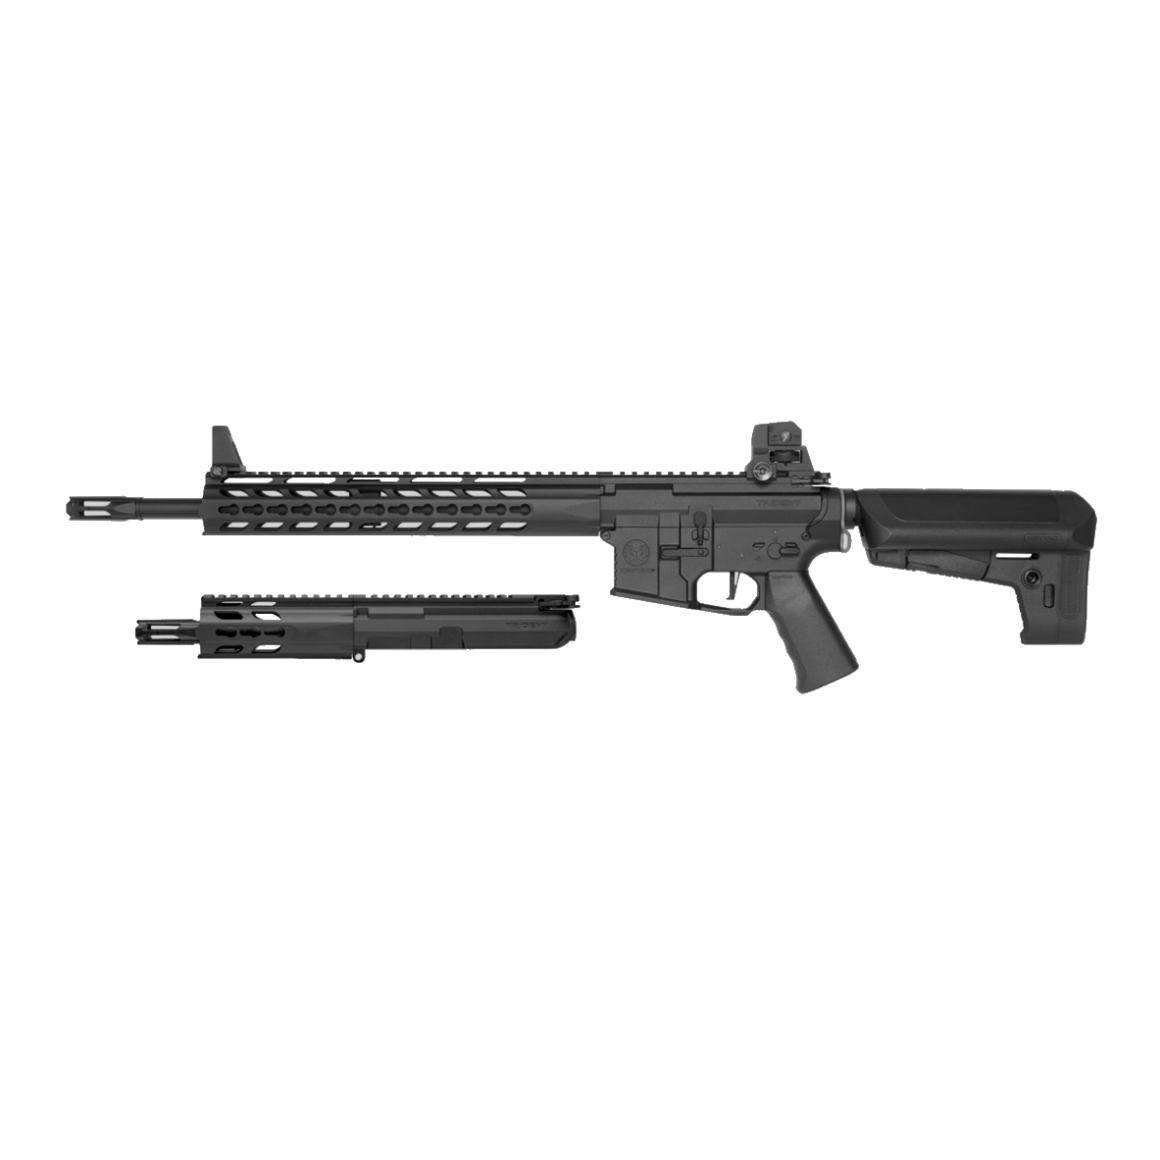 jpg royalty free download Vector carbine krytac. Aegs milwaukee airsoft and